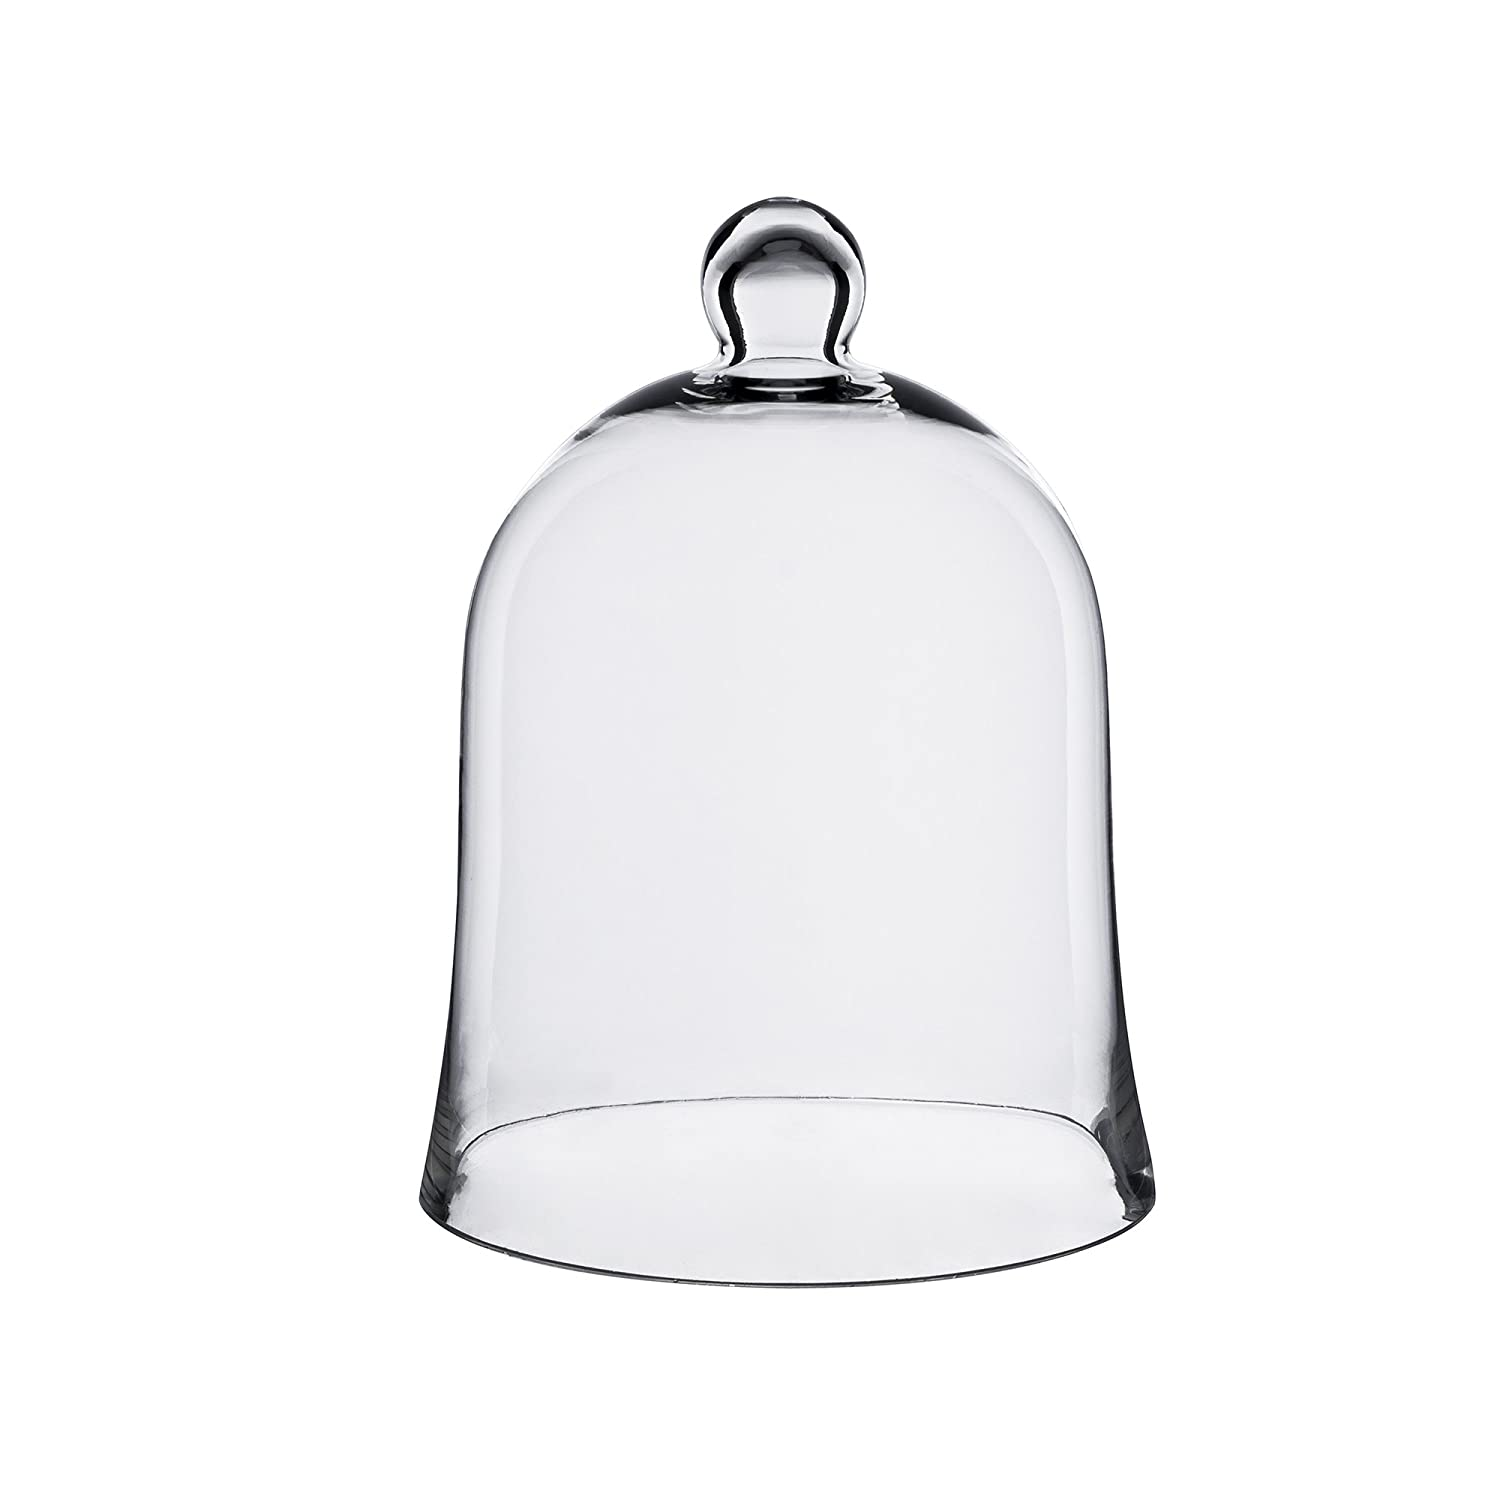 CYS GCL108 Cloche Bell Glass Dome with Tray, 7.5